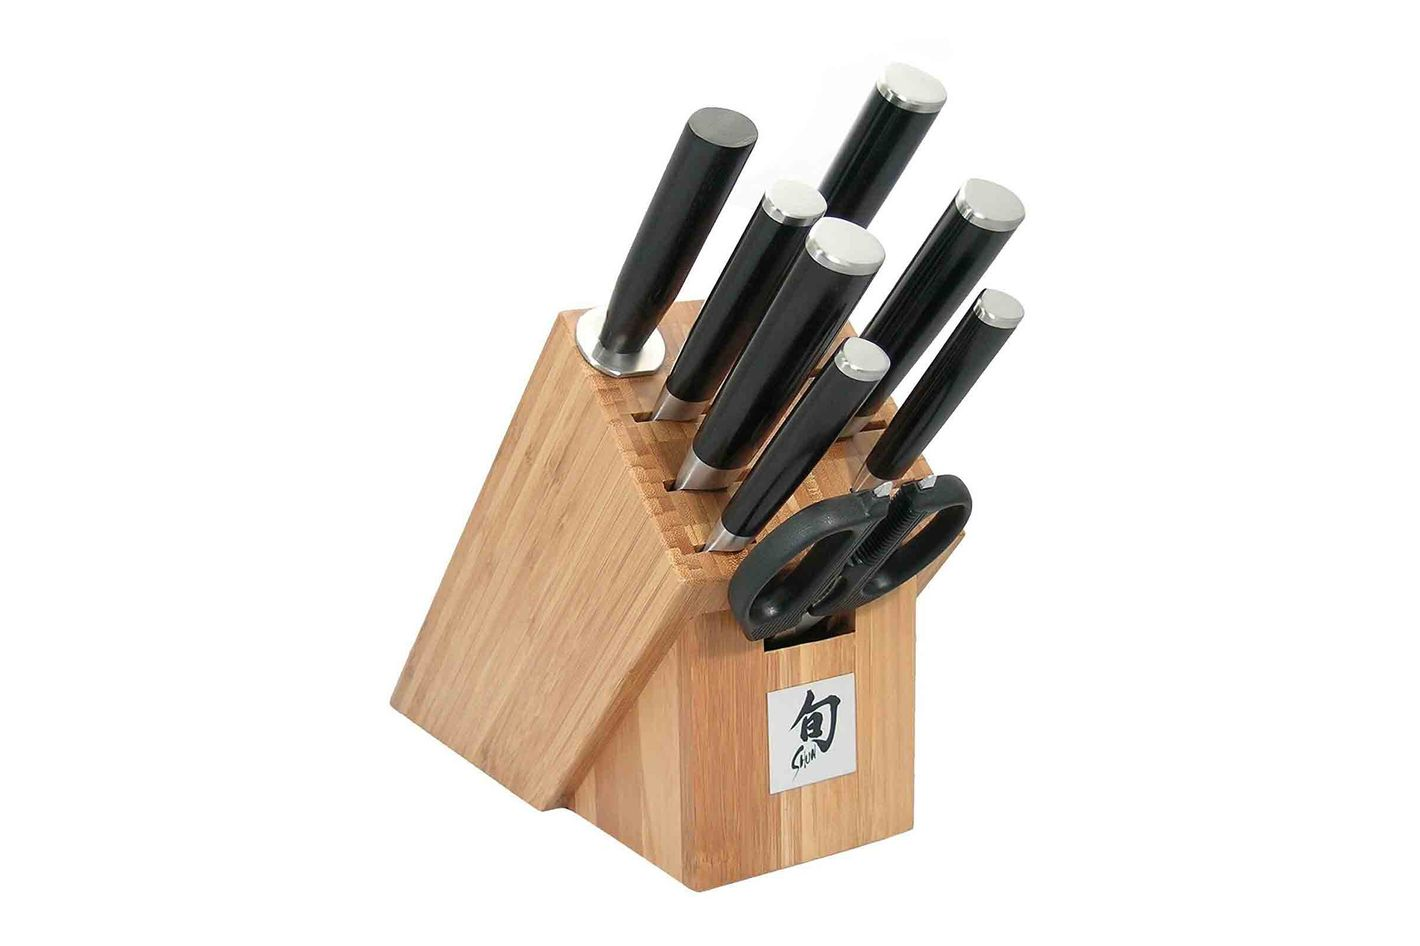 Shun 9-Piece Knife Block Set